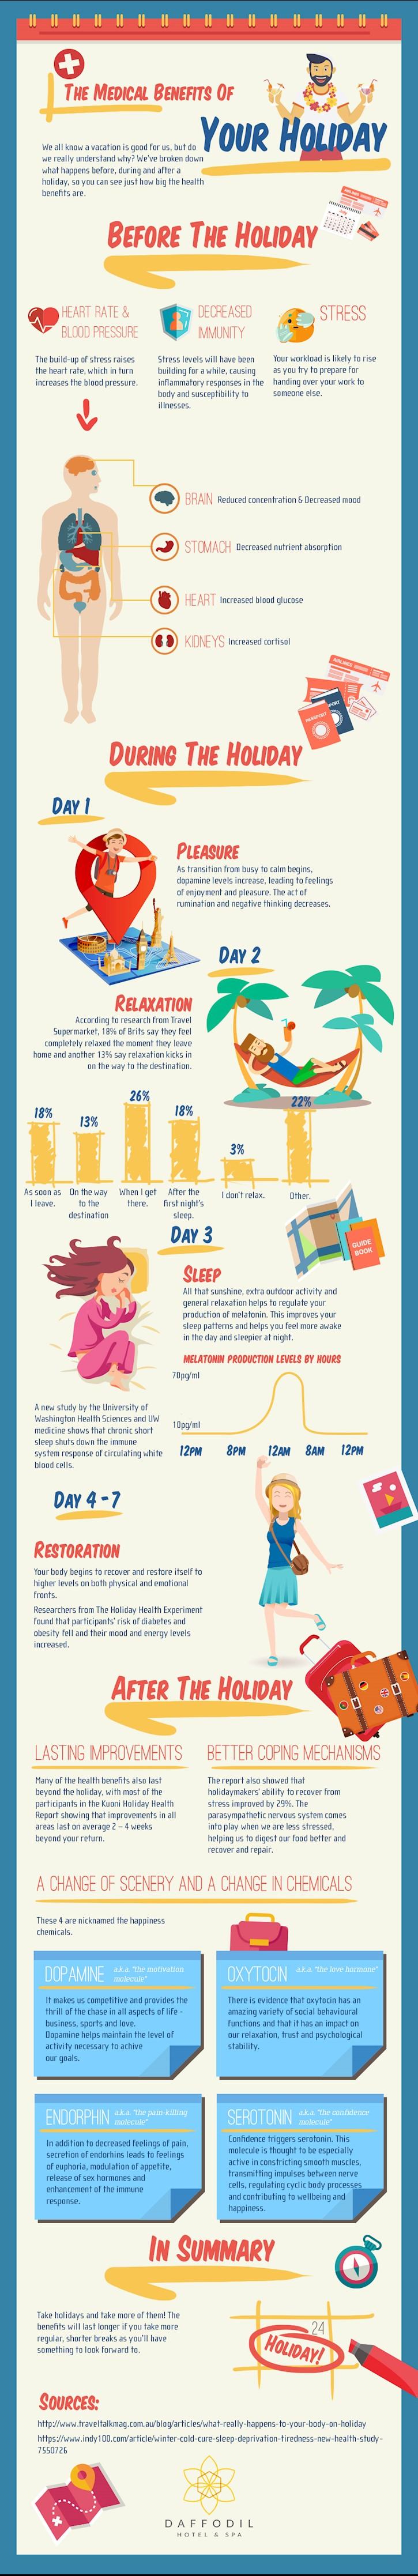 Vacations Are Medically Beneficial! – Infographic